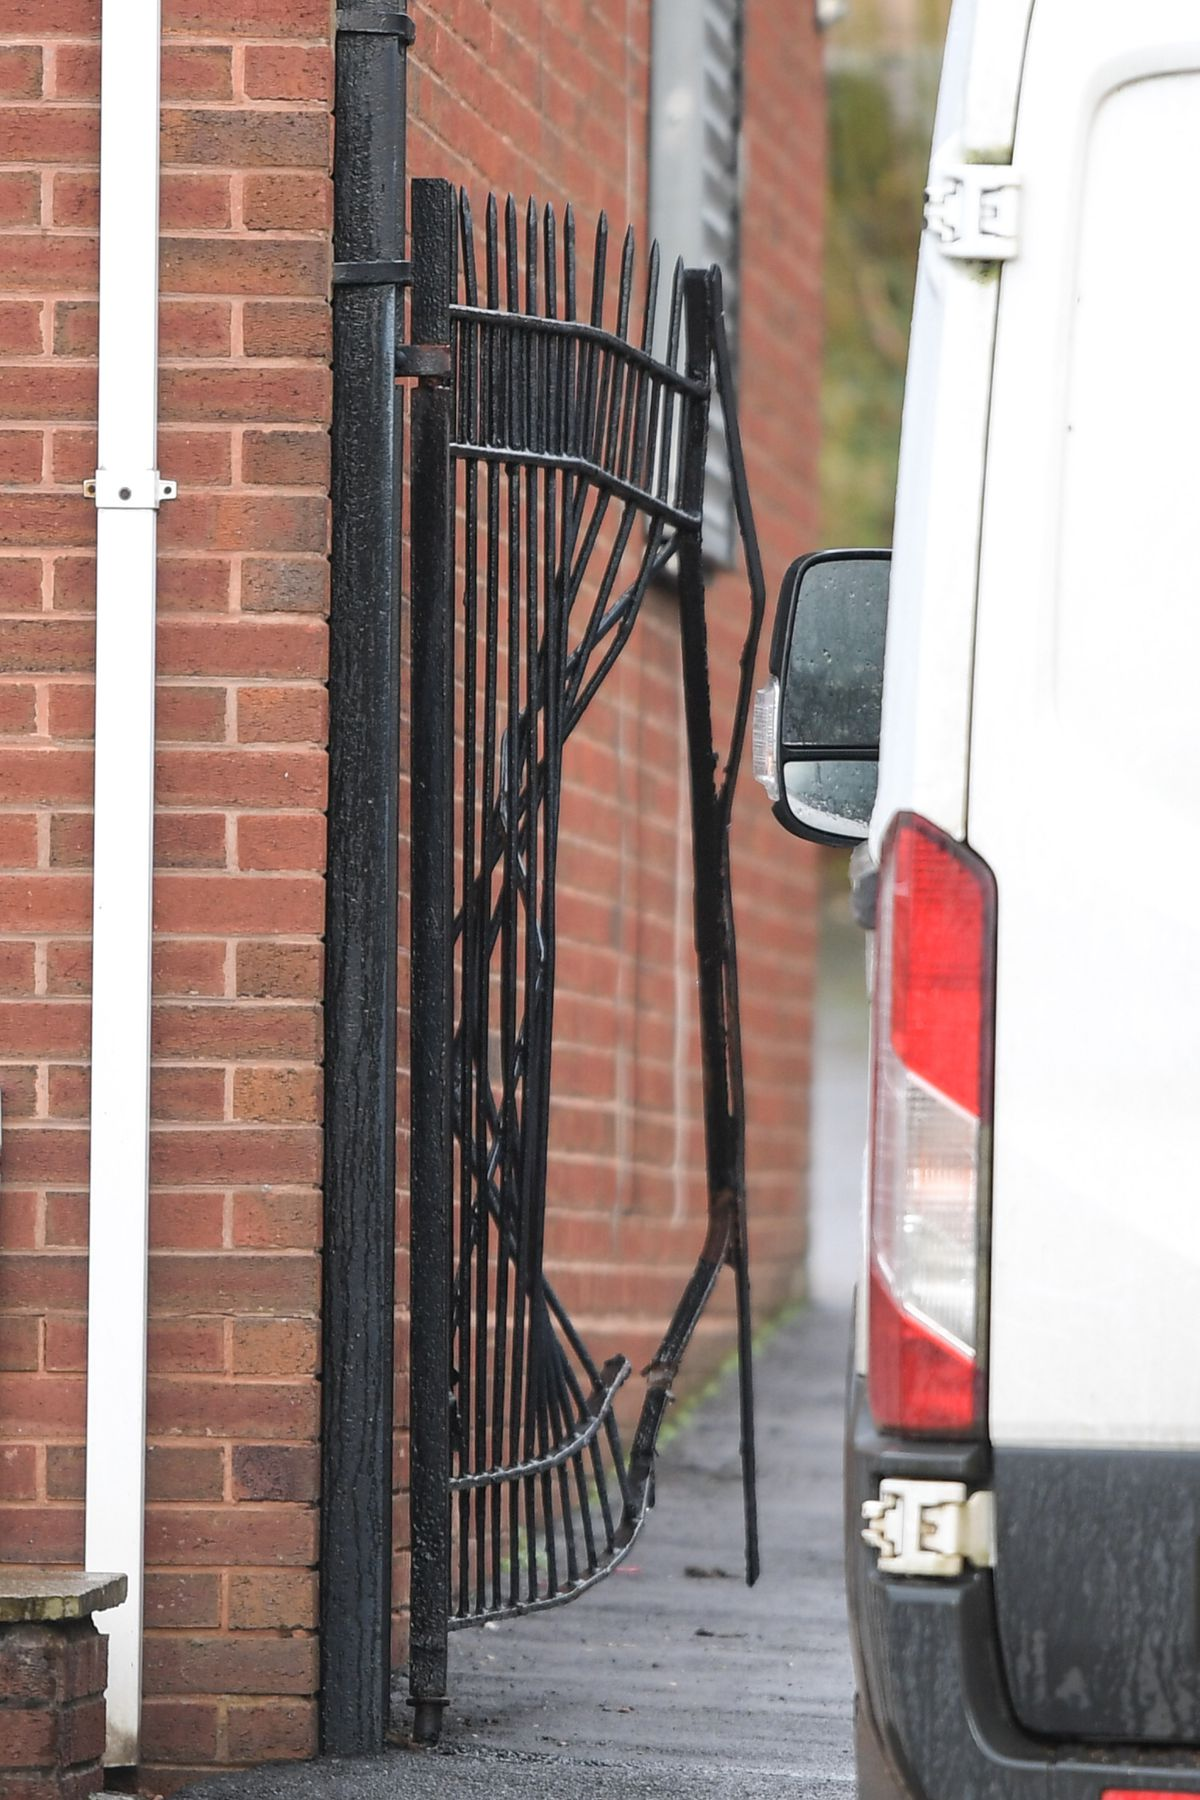 The raiders rammed the side gates to break in to the property (Image by SnapperSK)